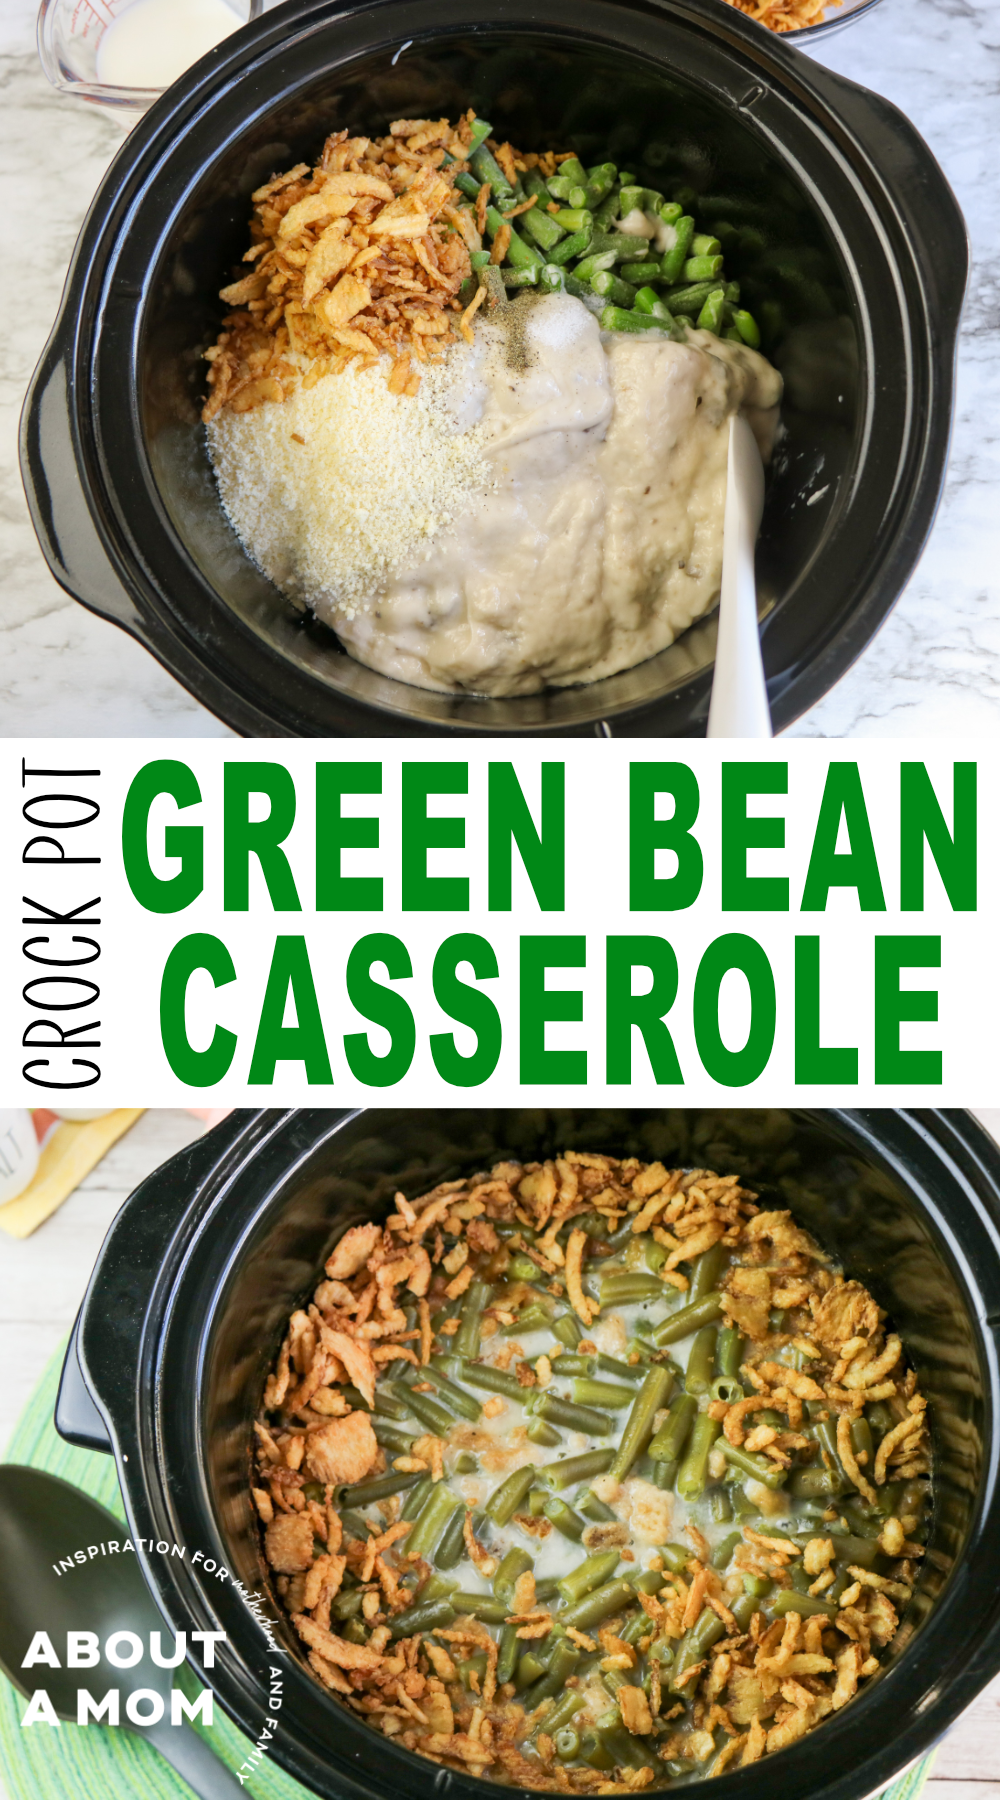 This crock pot green bean casserole is amazingly easy and delicious! Make it for a holiday dinner or anytime you are attending a potluck!